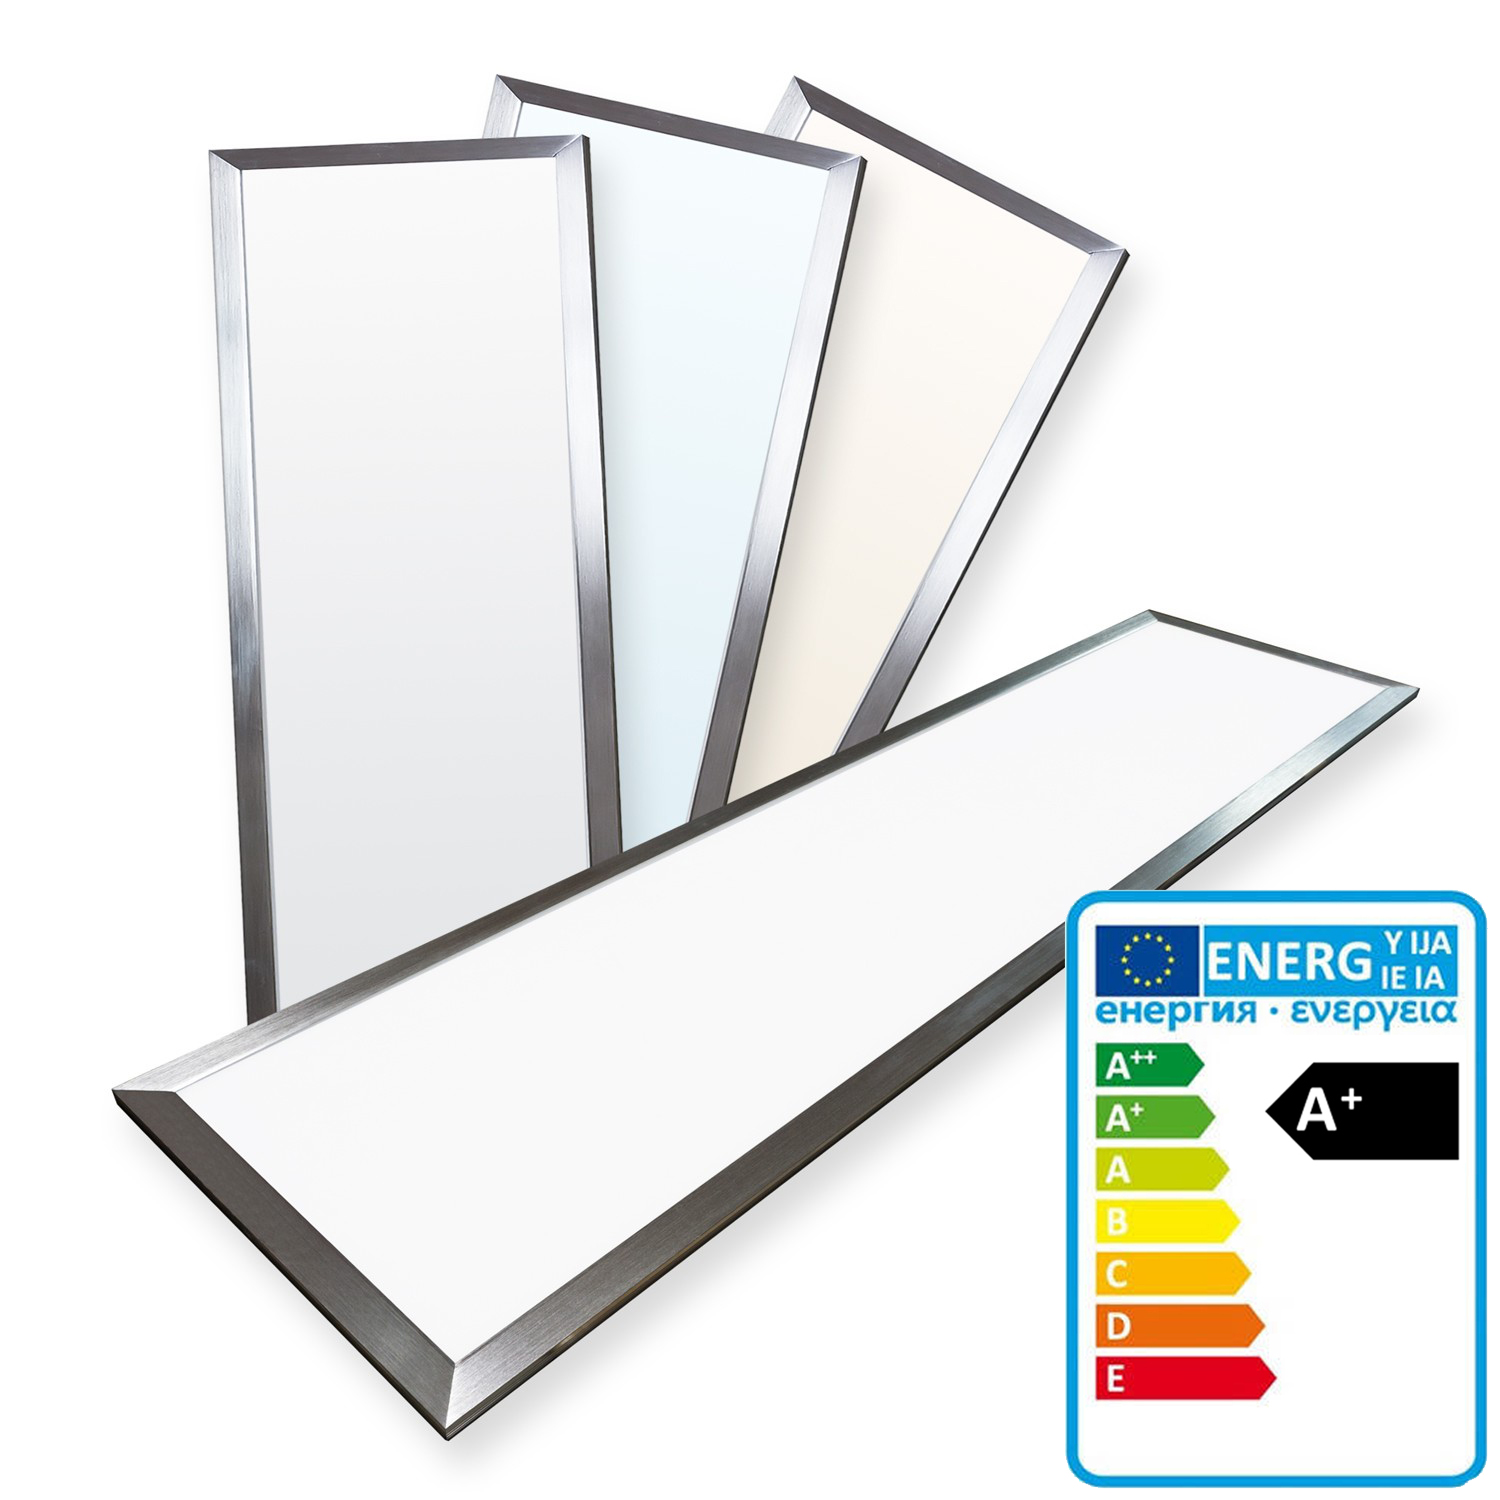 ThorX 1200x300mm Ultraslim LED Panel - 36W, 3000lm With Mounting Clips And Led Driver 100-240V, Cool / Warm / Neutral White